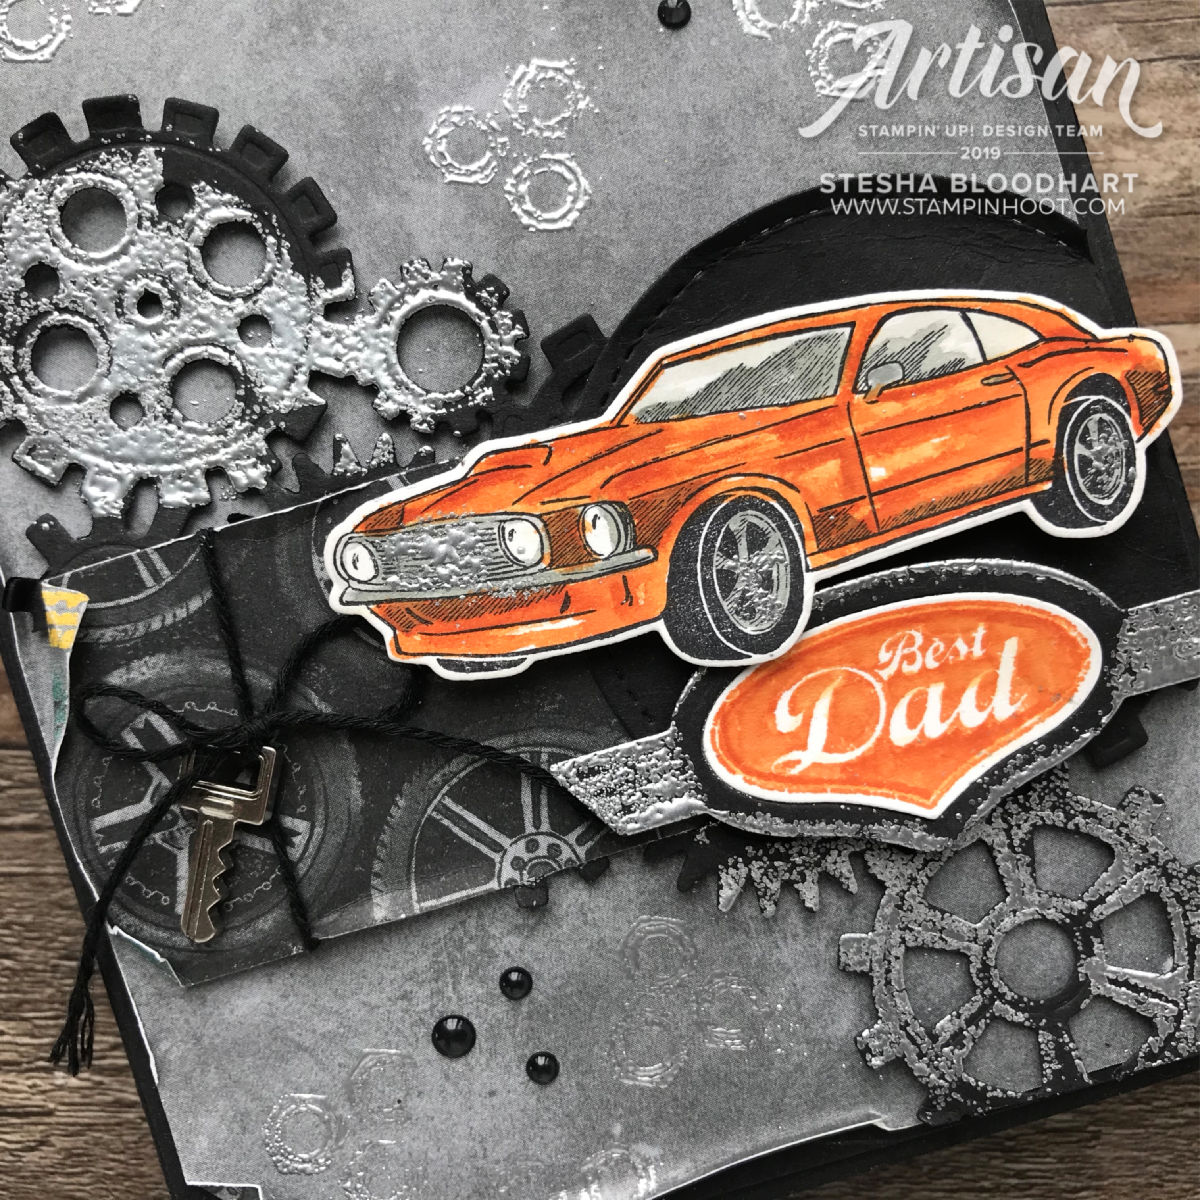 Garage Gears 2019 Artisan Design Stesha Bloodhart Best Dad and Geared Up to Celebrate